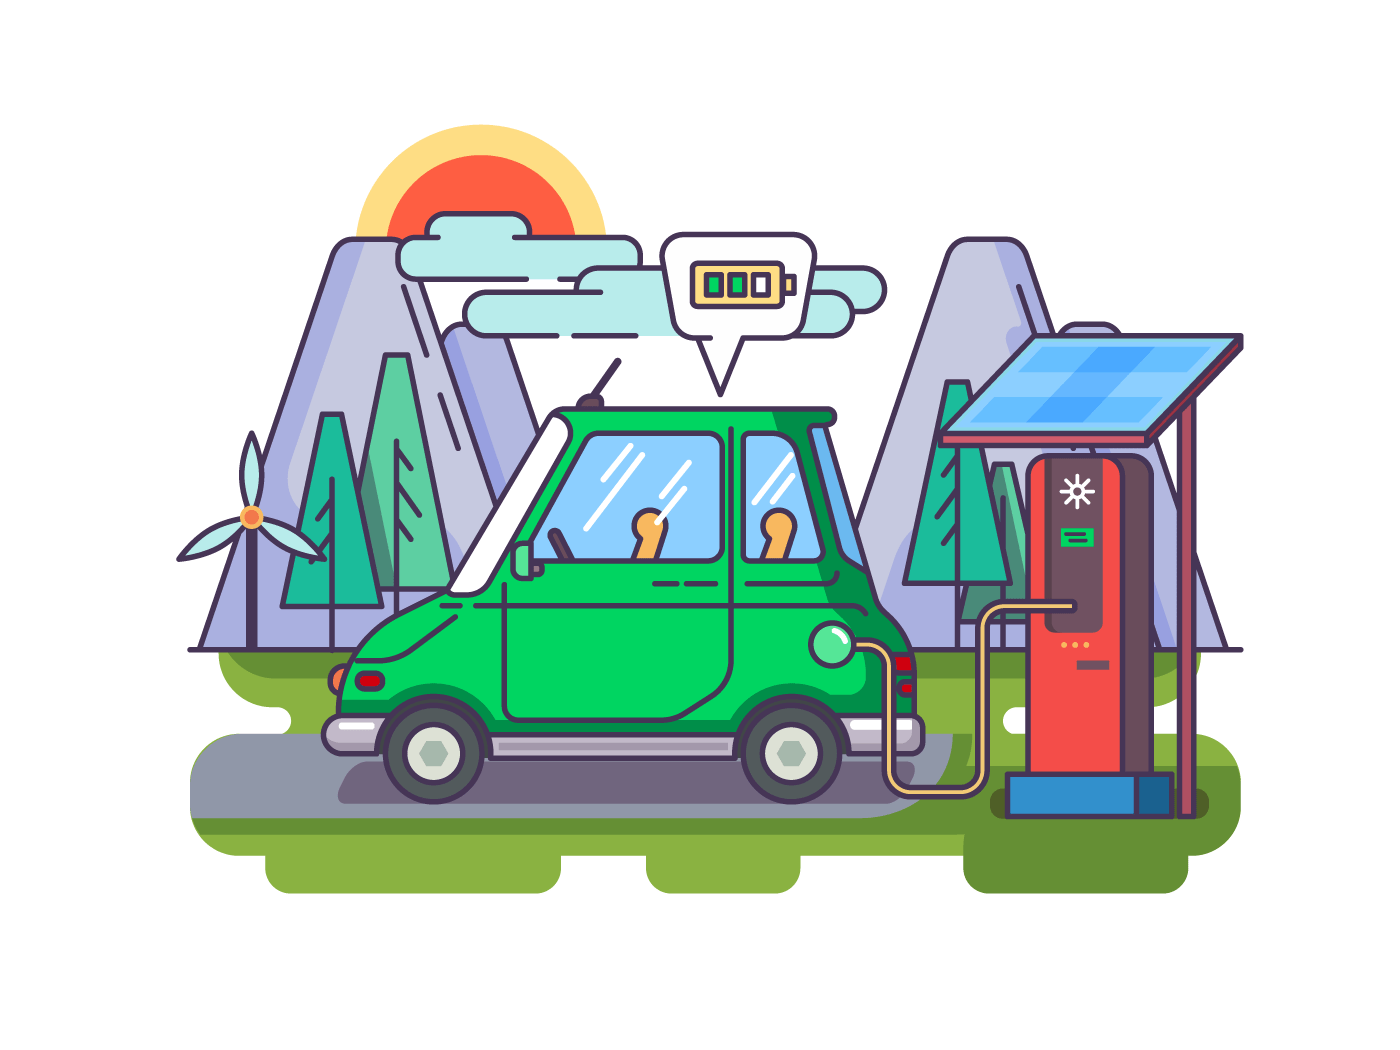 Ecological modern car illustration